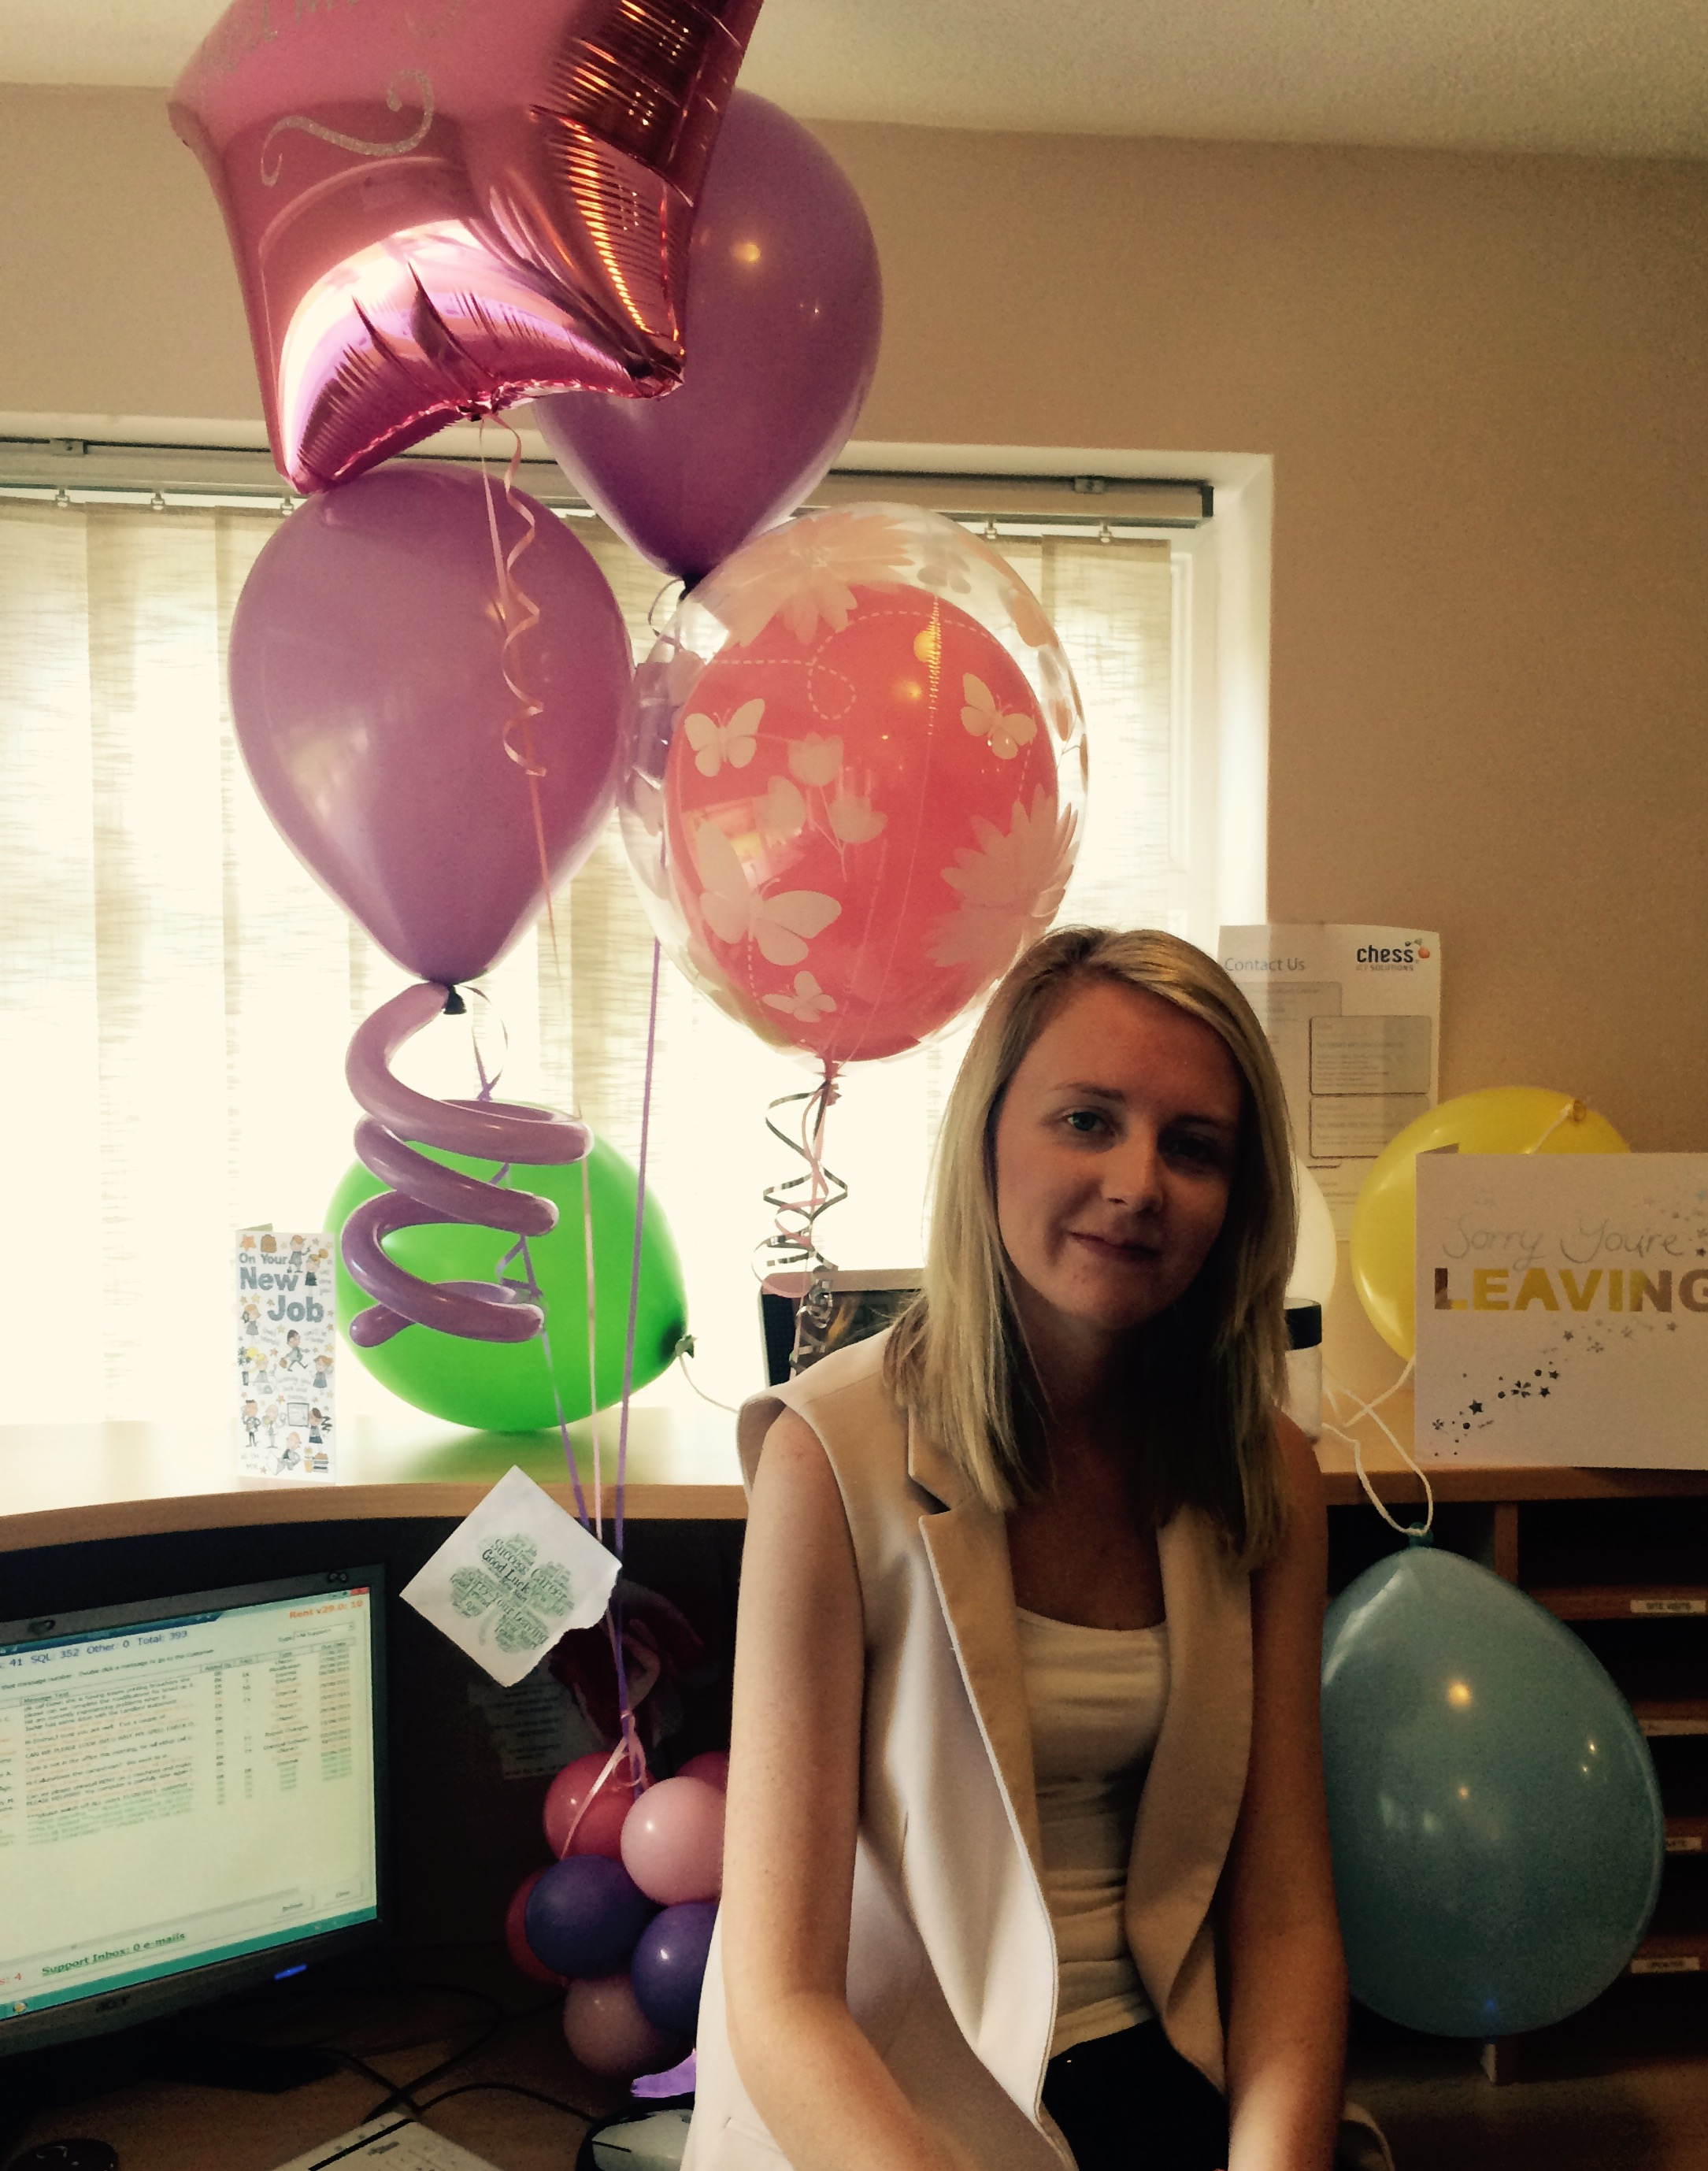 We'd like to say thank you and goodbye to Emma Kerin